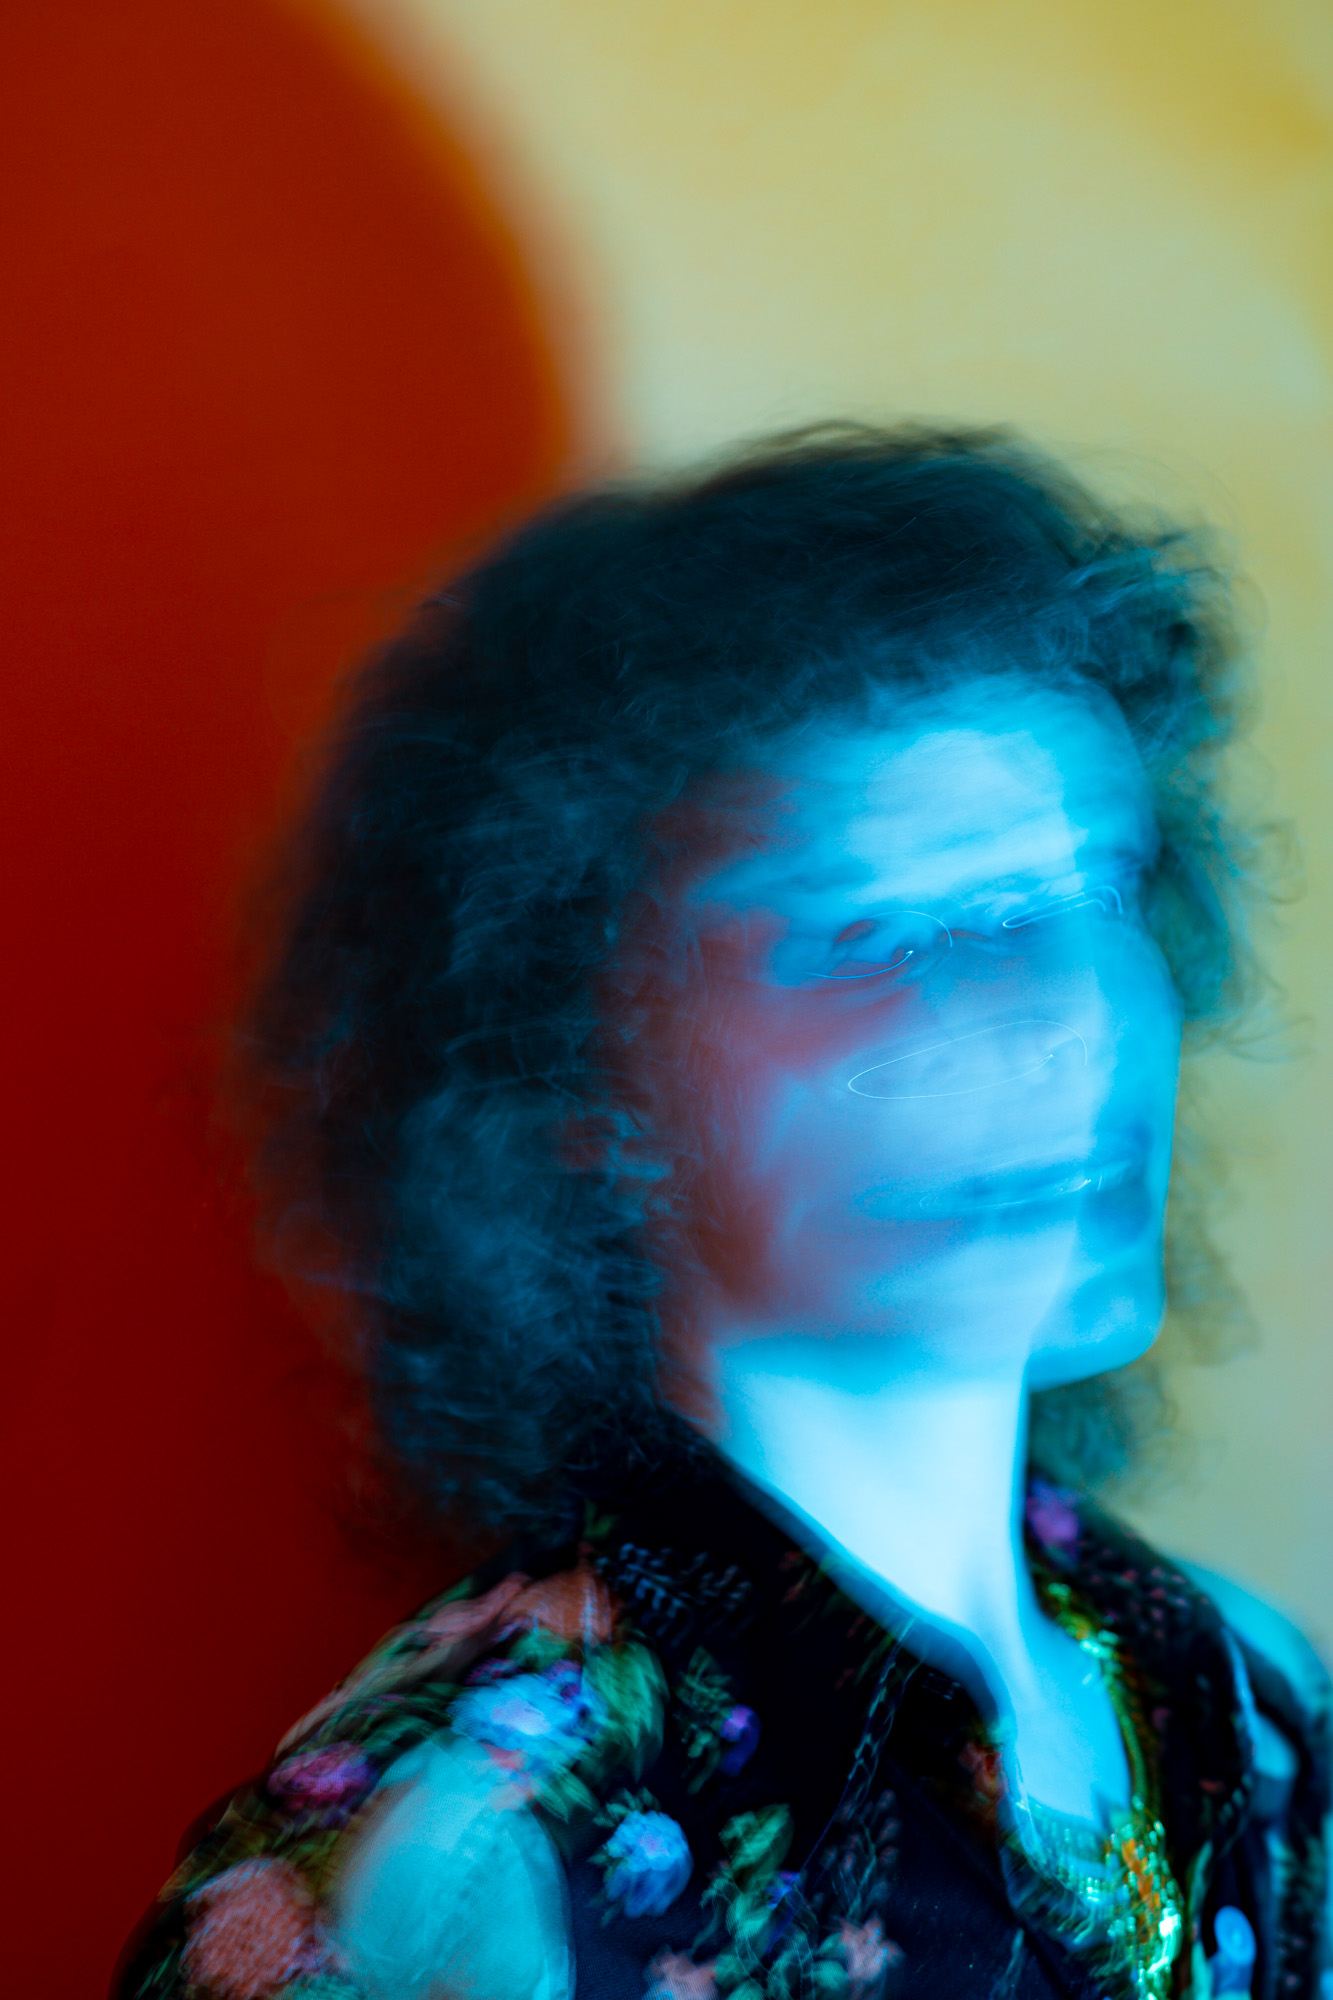 a woman yells while a bright blue light consumes the frame, blurring her face